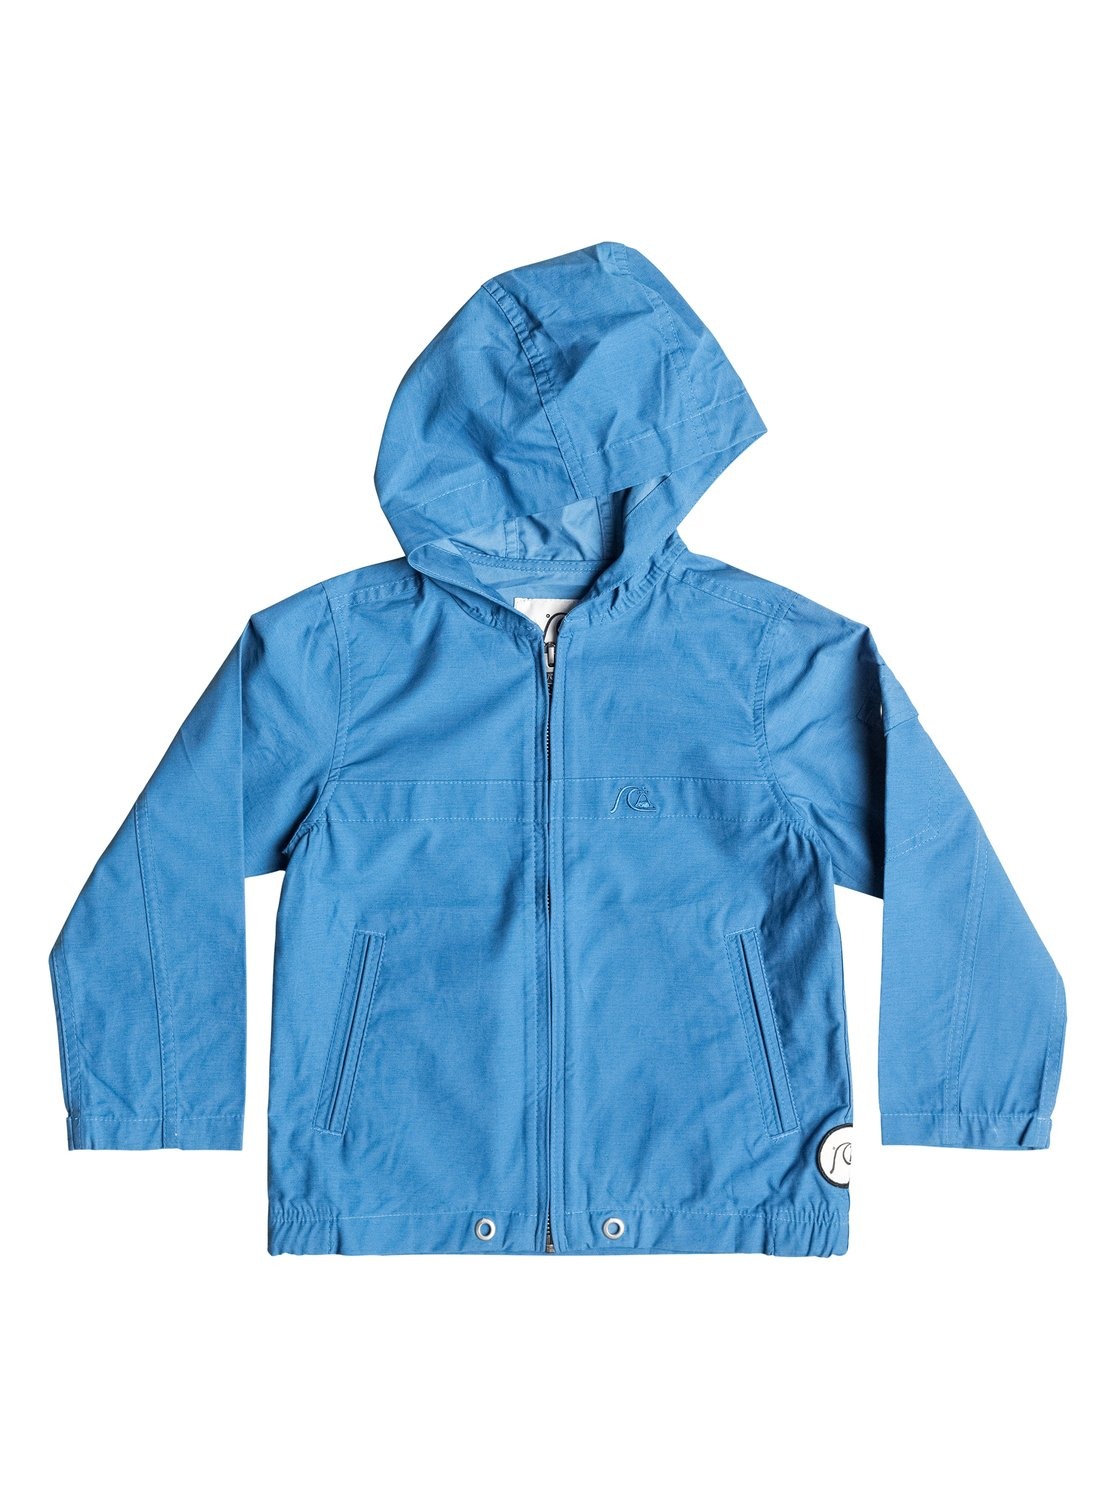 Boy's Shoreline Parka Jacket от Quiksilver